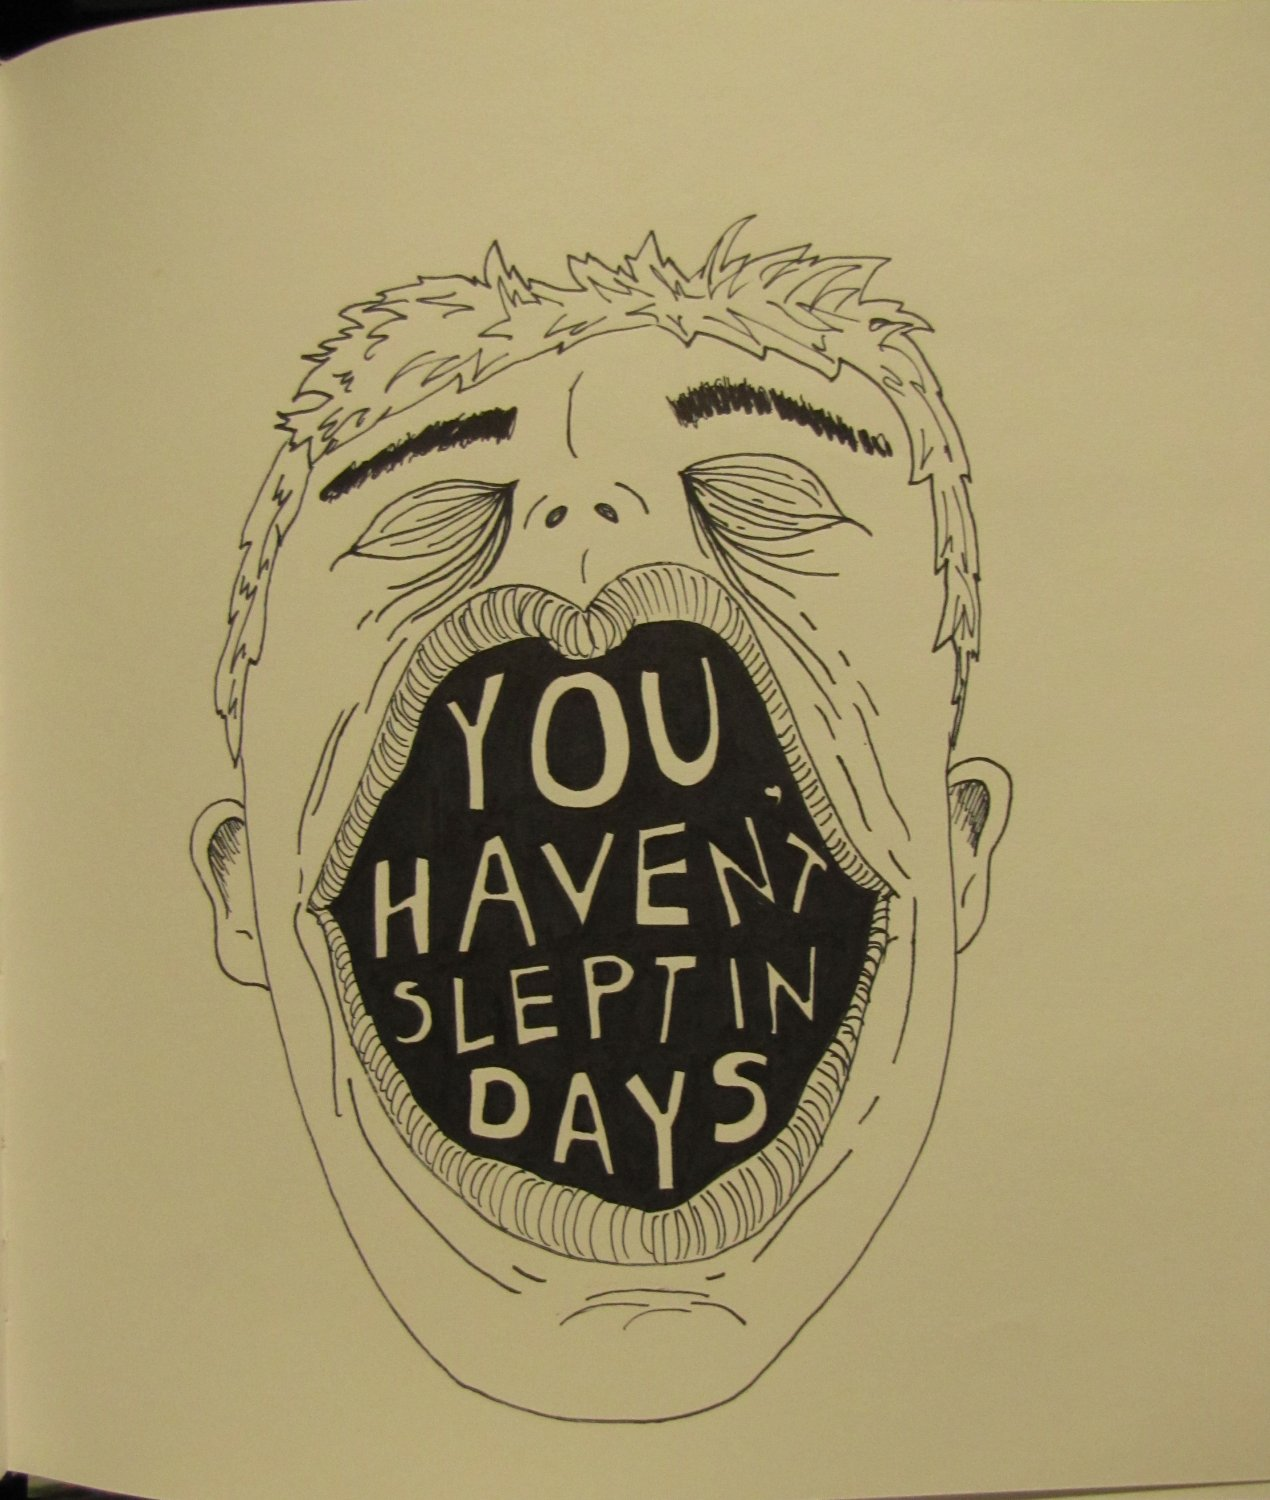 You haven't slept in days